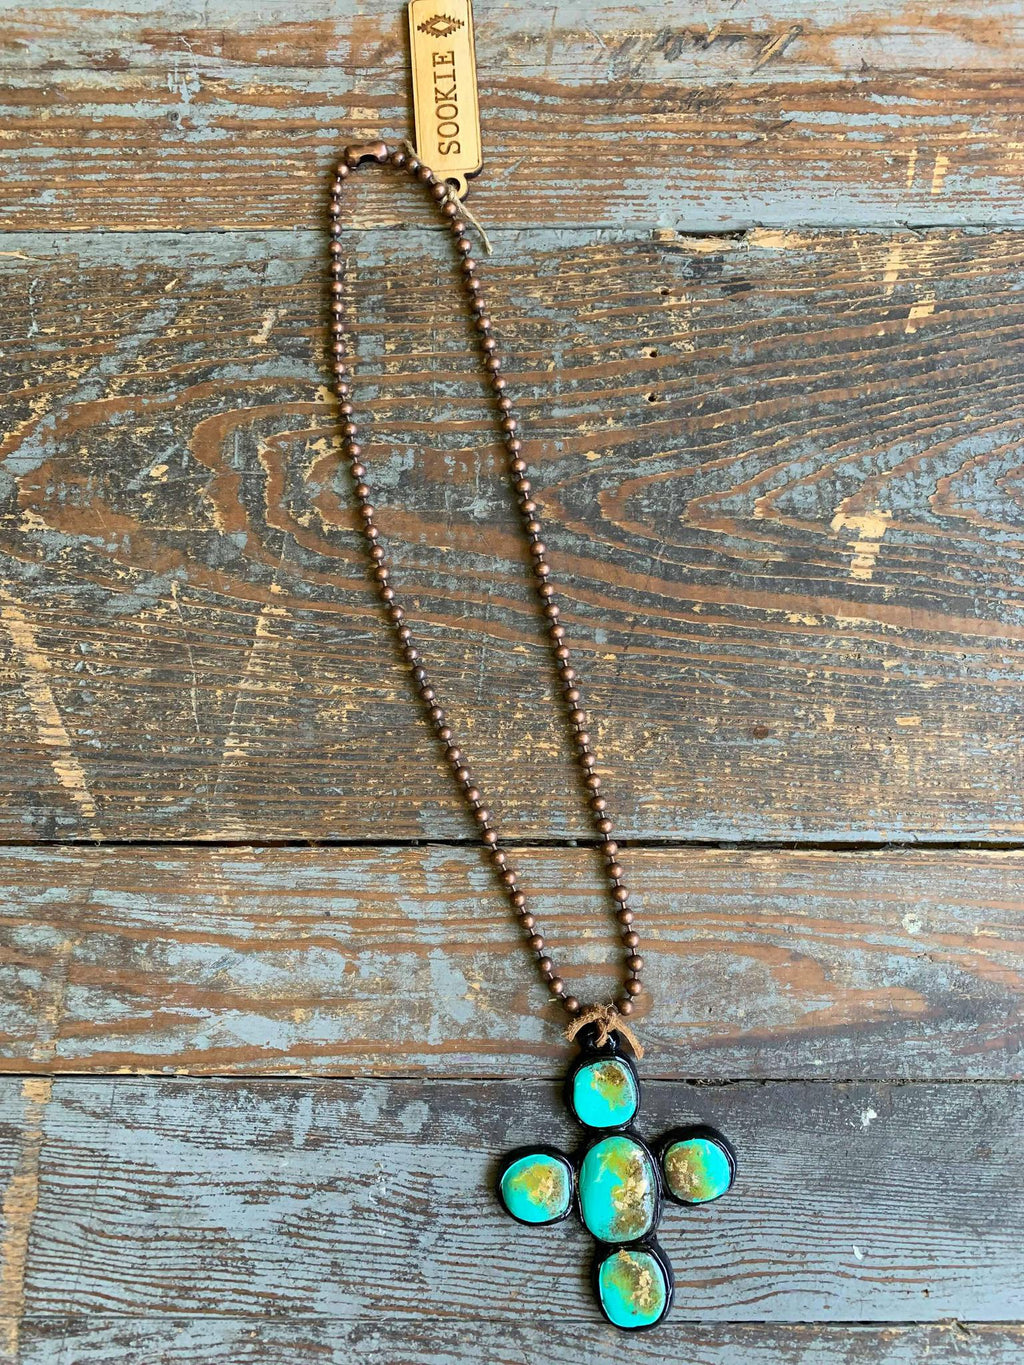 Agave Necklace Black and Turquoise Sookie Sookie